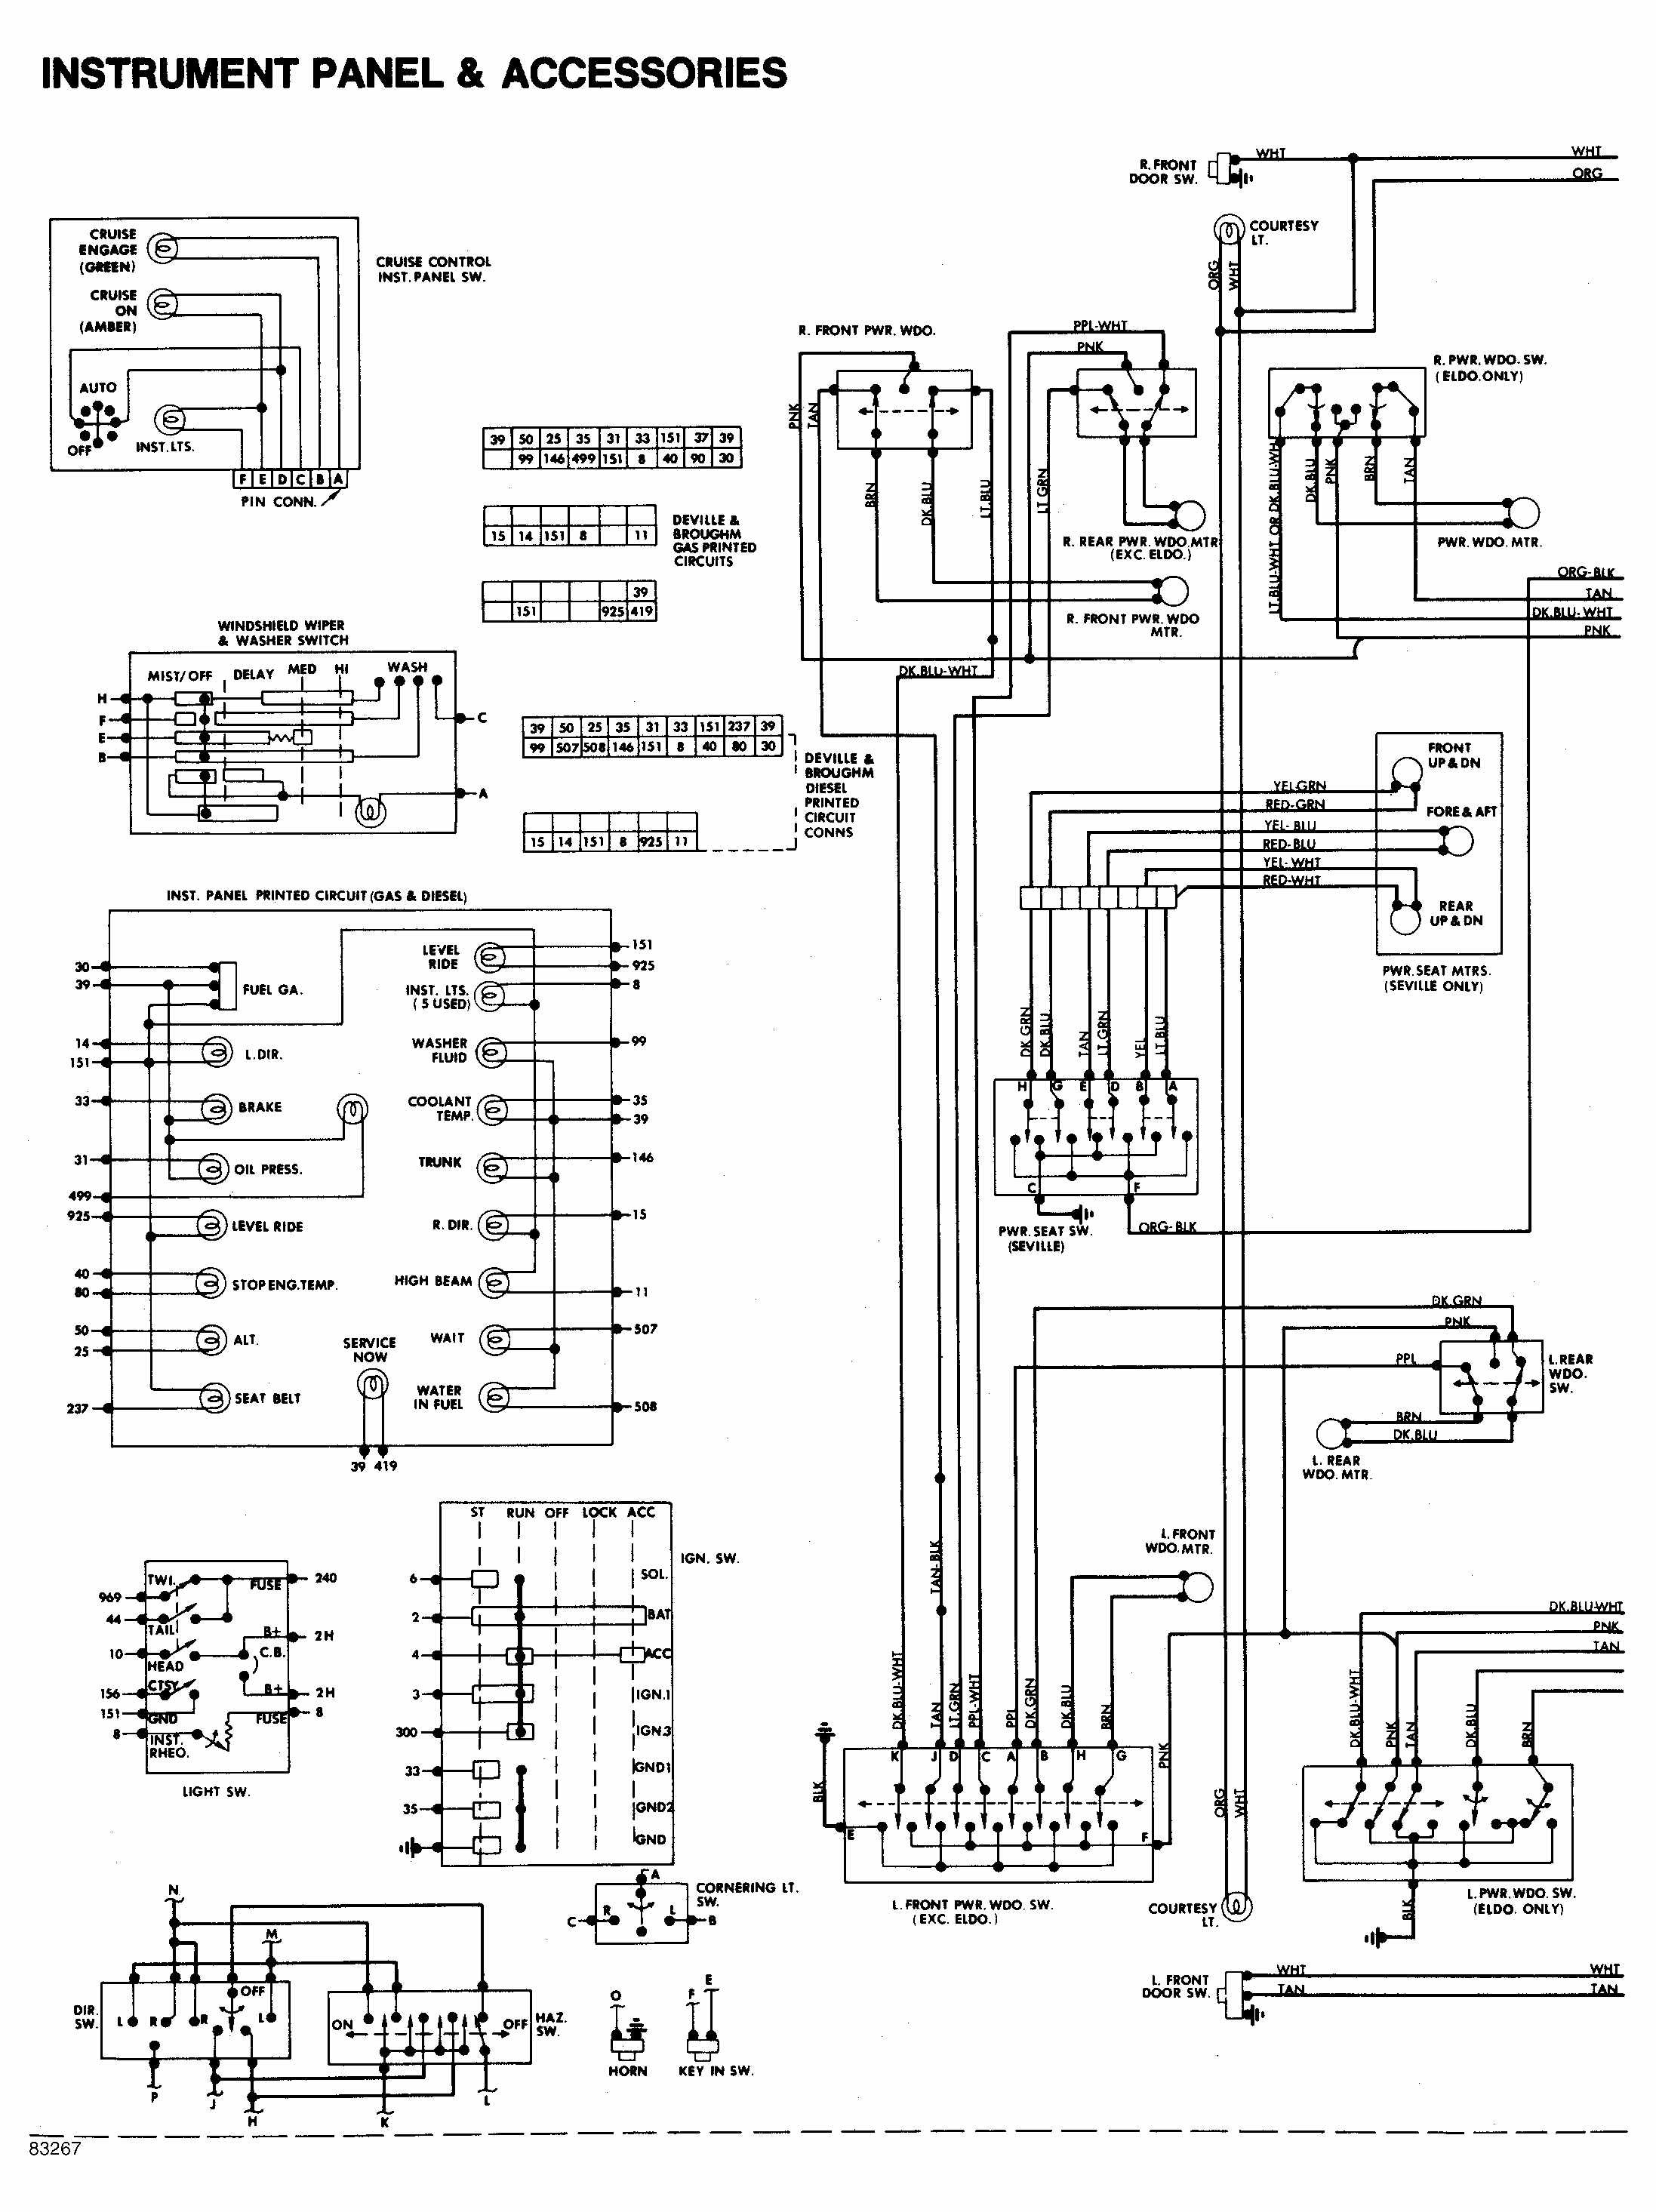 Fuel Gauge Diagram Wiring Diagram as Well 1984 Corvette